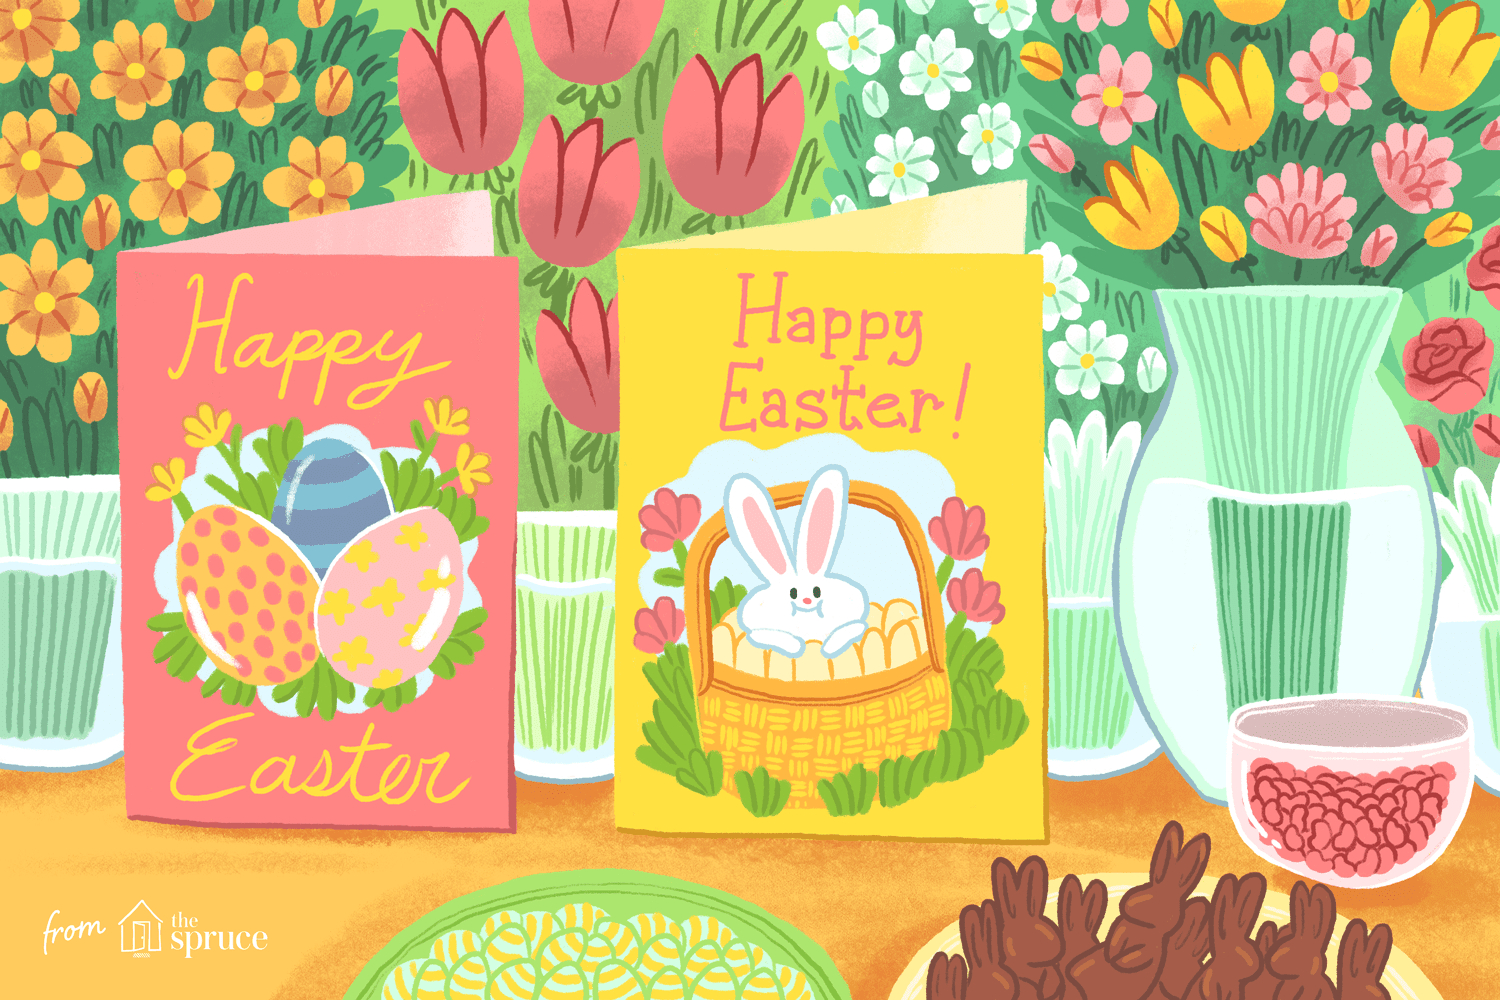 12 Free, Printable Easter Cards For Everyone You Know - Printable Easter Greeting Cards Free